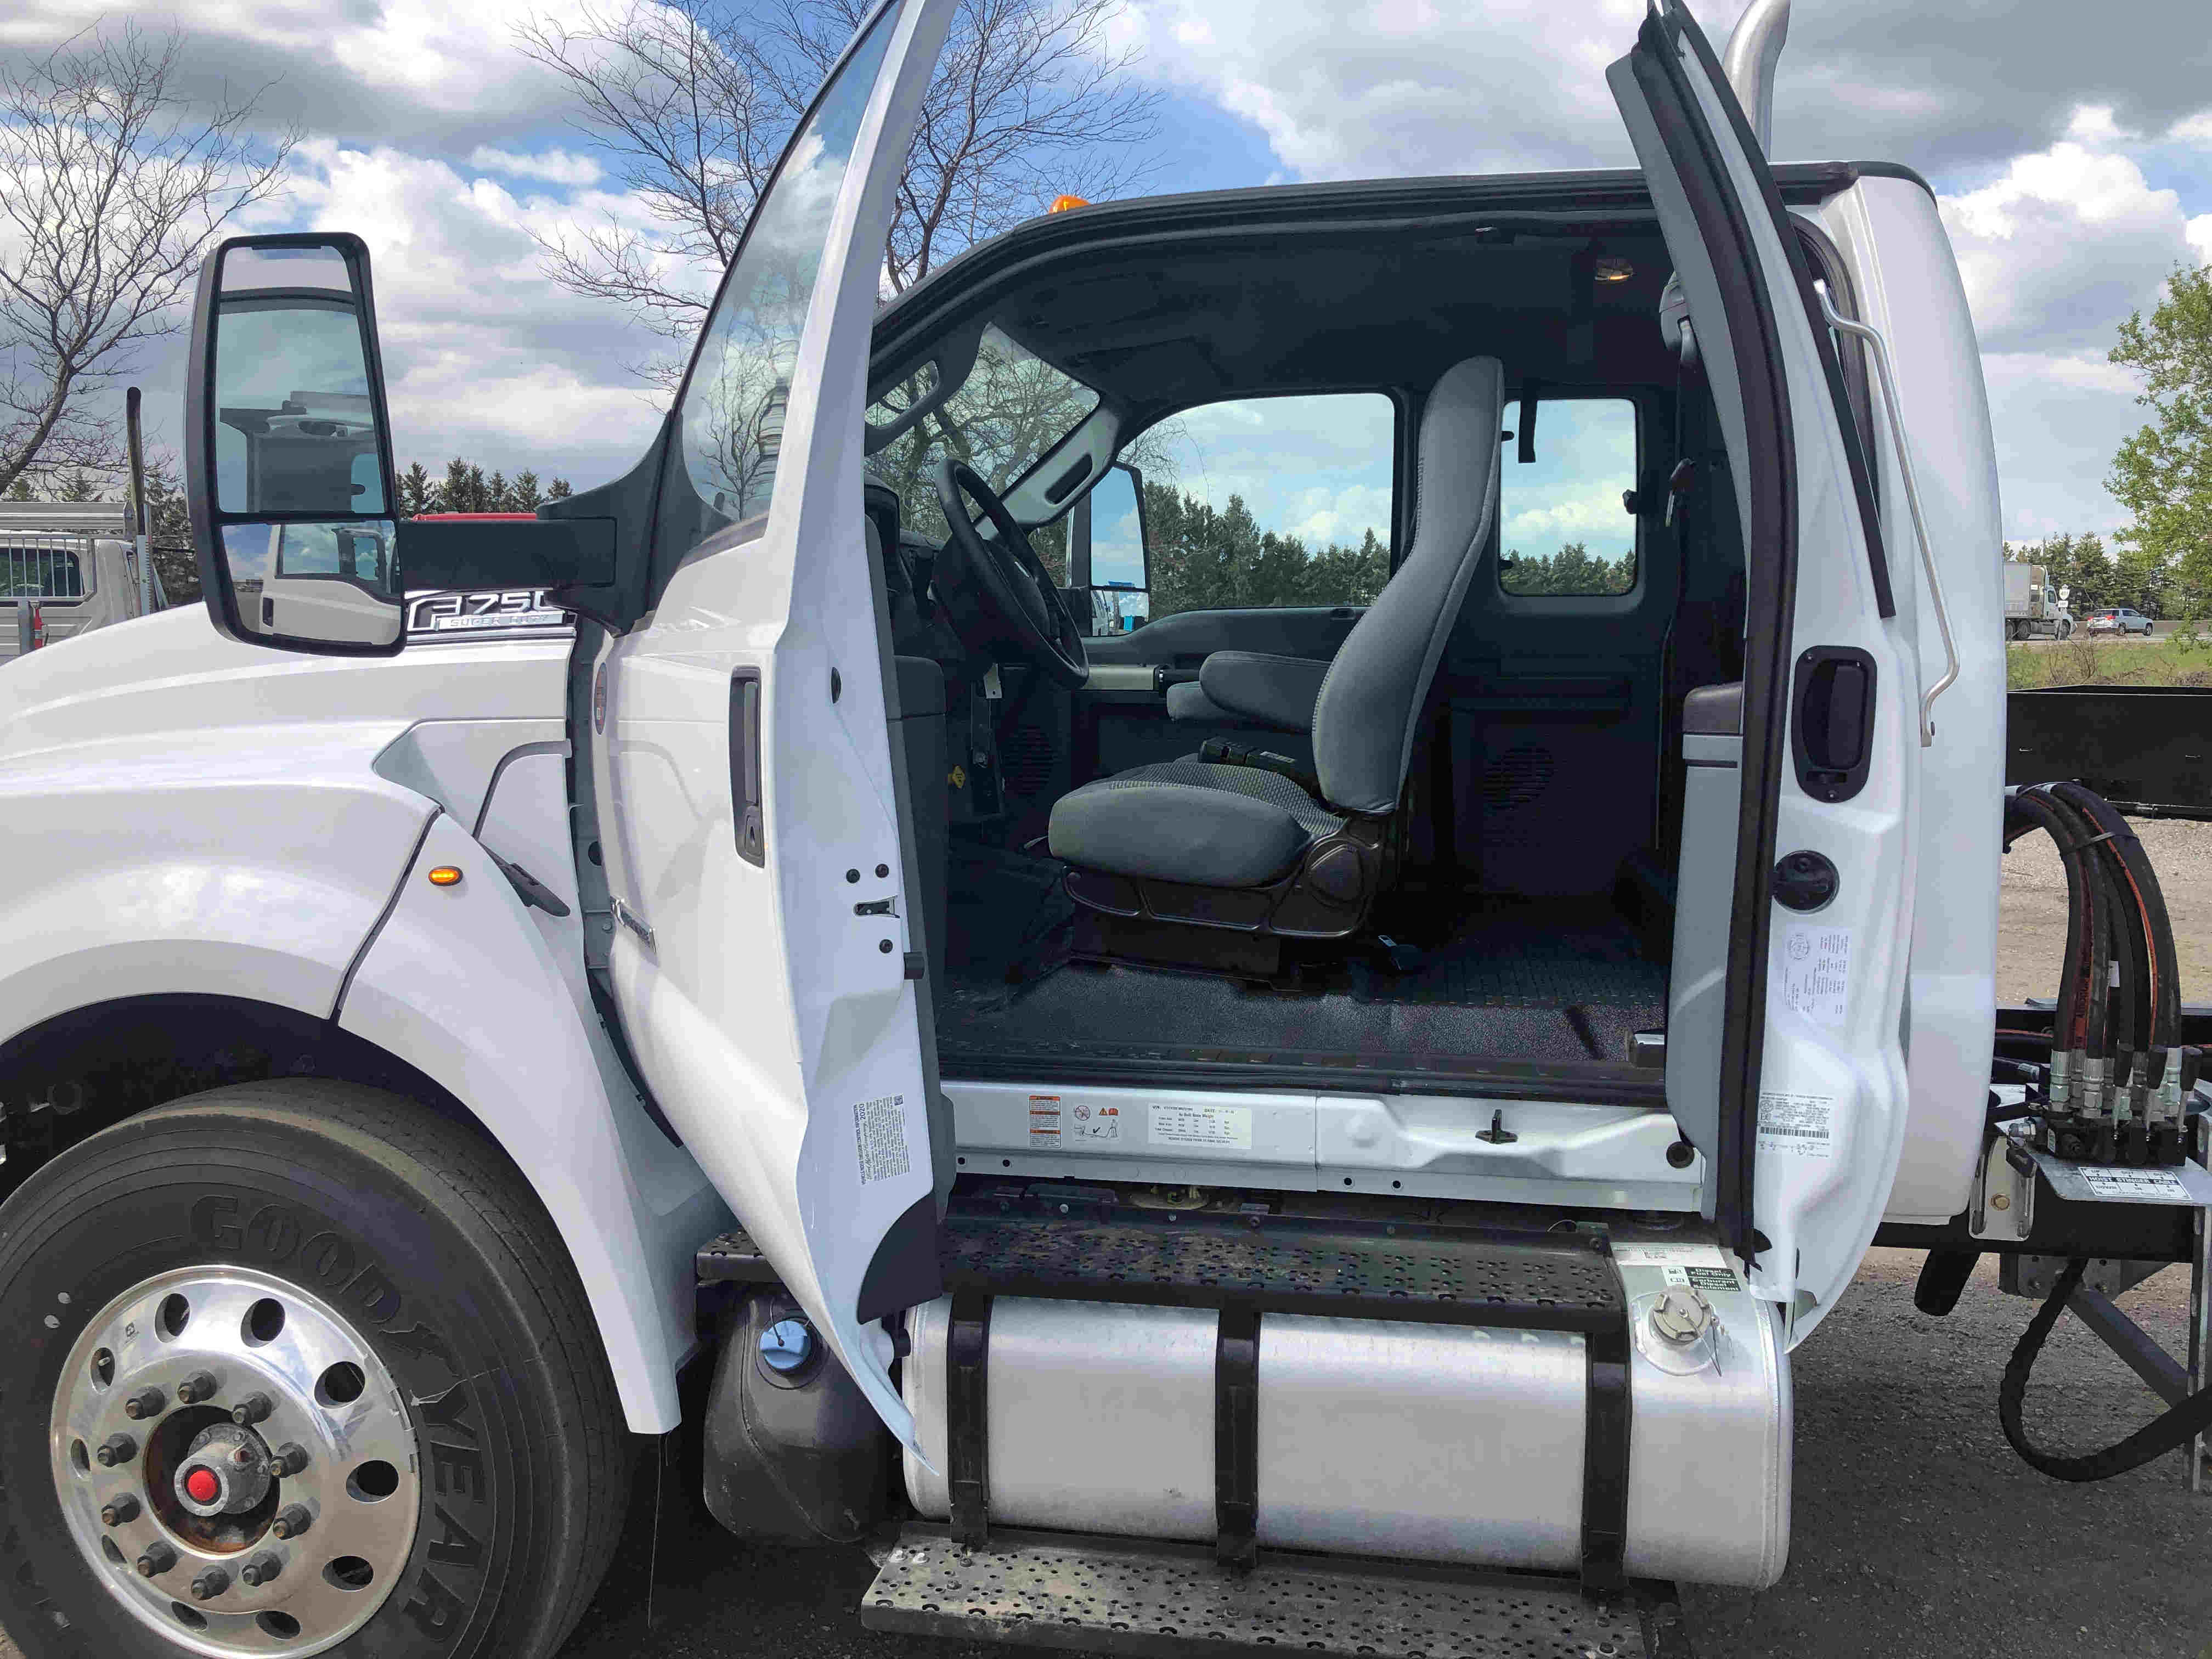 2021 Ford F750 12 On Trux System White (9)